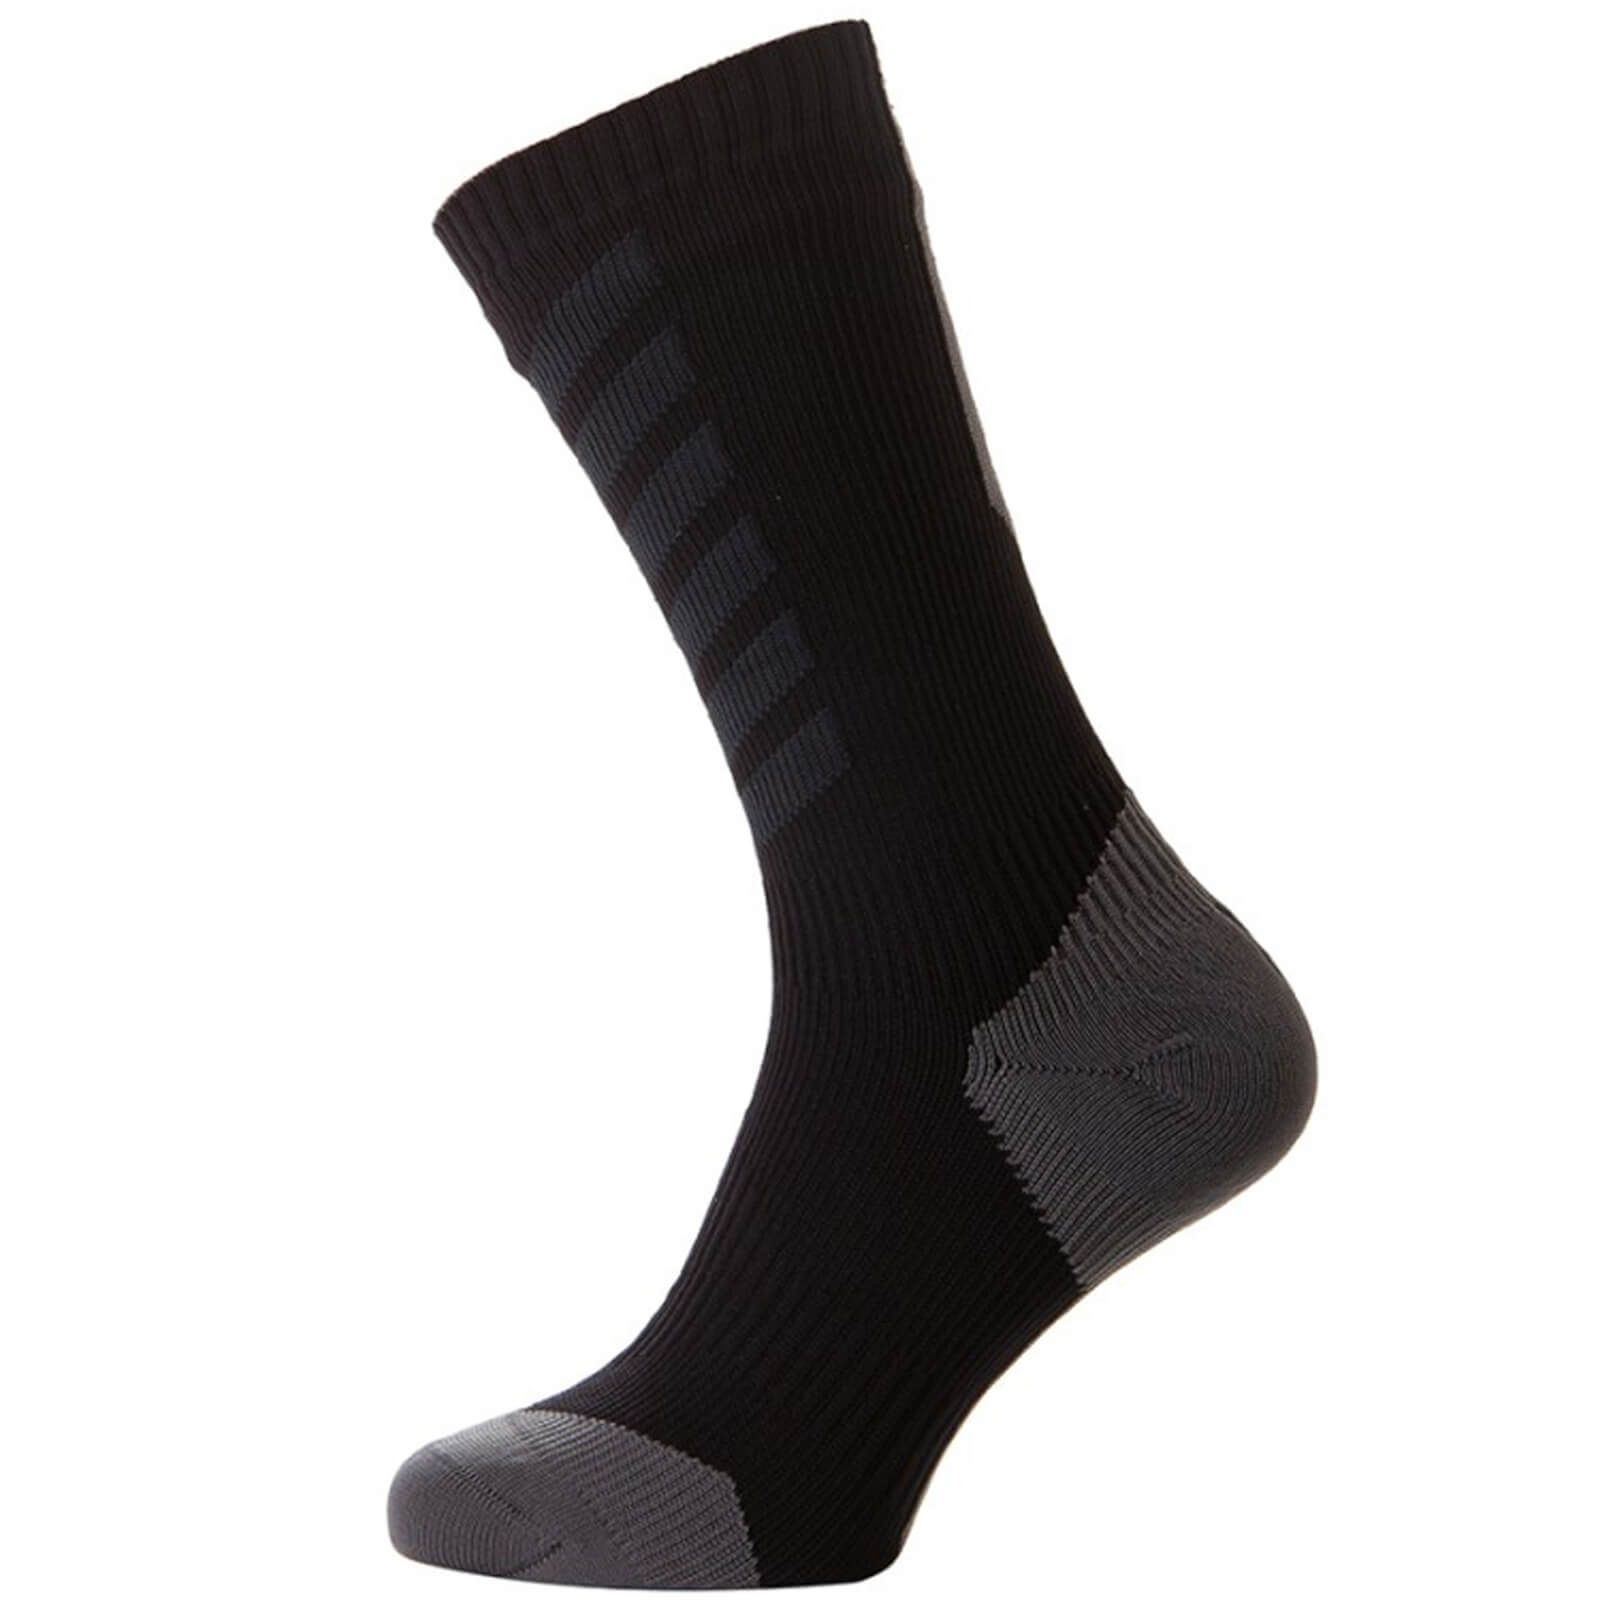 Sealskinz MTB Thin Mid Socks with Hydrostop - Black/Anthracite